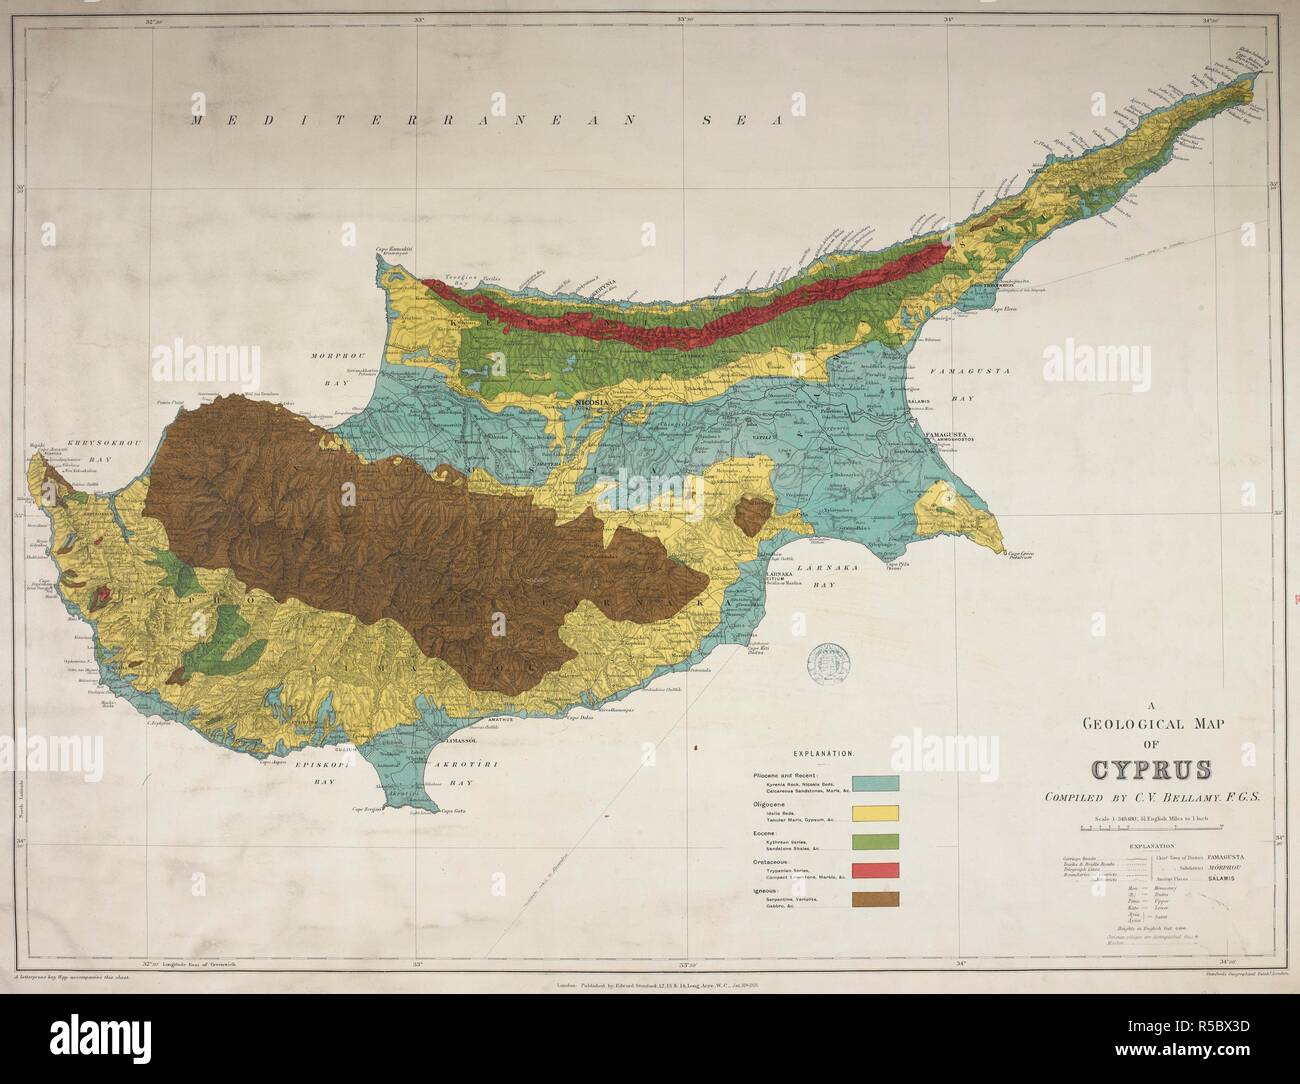 A geological map of Cyprus. A Geological Map of Cyprus ... on geographical map, nautical chart, physical map, treasure map, michigan geology map, gis map, topographical map, relief map, aeronautical chart, flow map, world map, our travels map, structural map, topological map, choropleth map, raised-relief map, new york state geologic map, pictorial maps, political map, us geology map, index map, economic map, climate map, thematic map, weather map, isopach map, william smith, geotechnical engineering, mineral map, vegetation map, land map, physiographic map, topographic map,